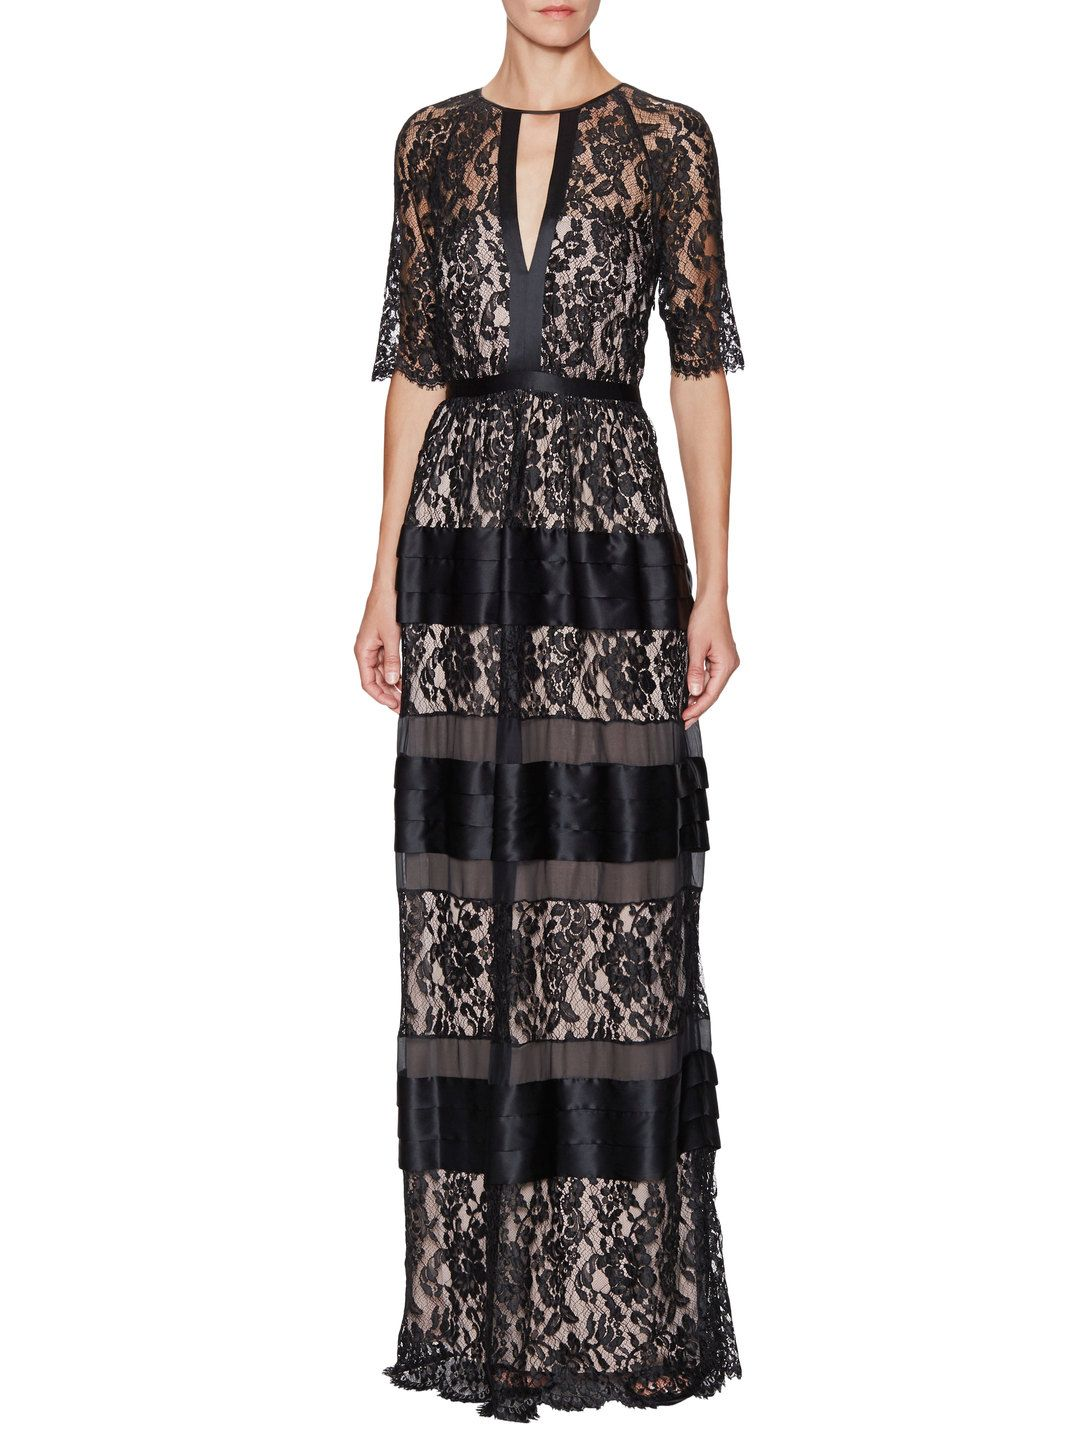 Newton Keyhole Lace Dress by Temperley London at Gilt